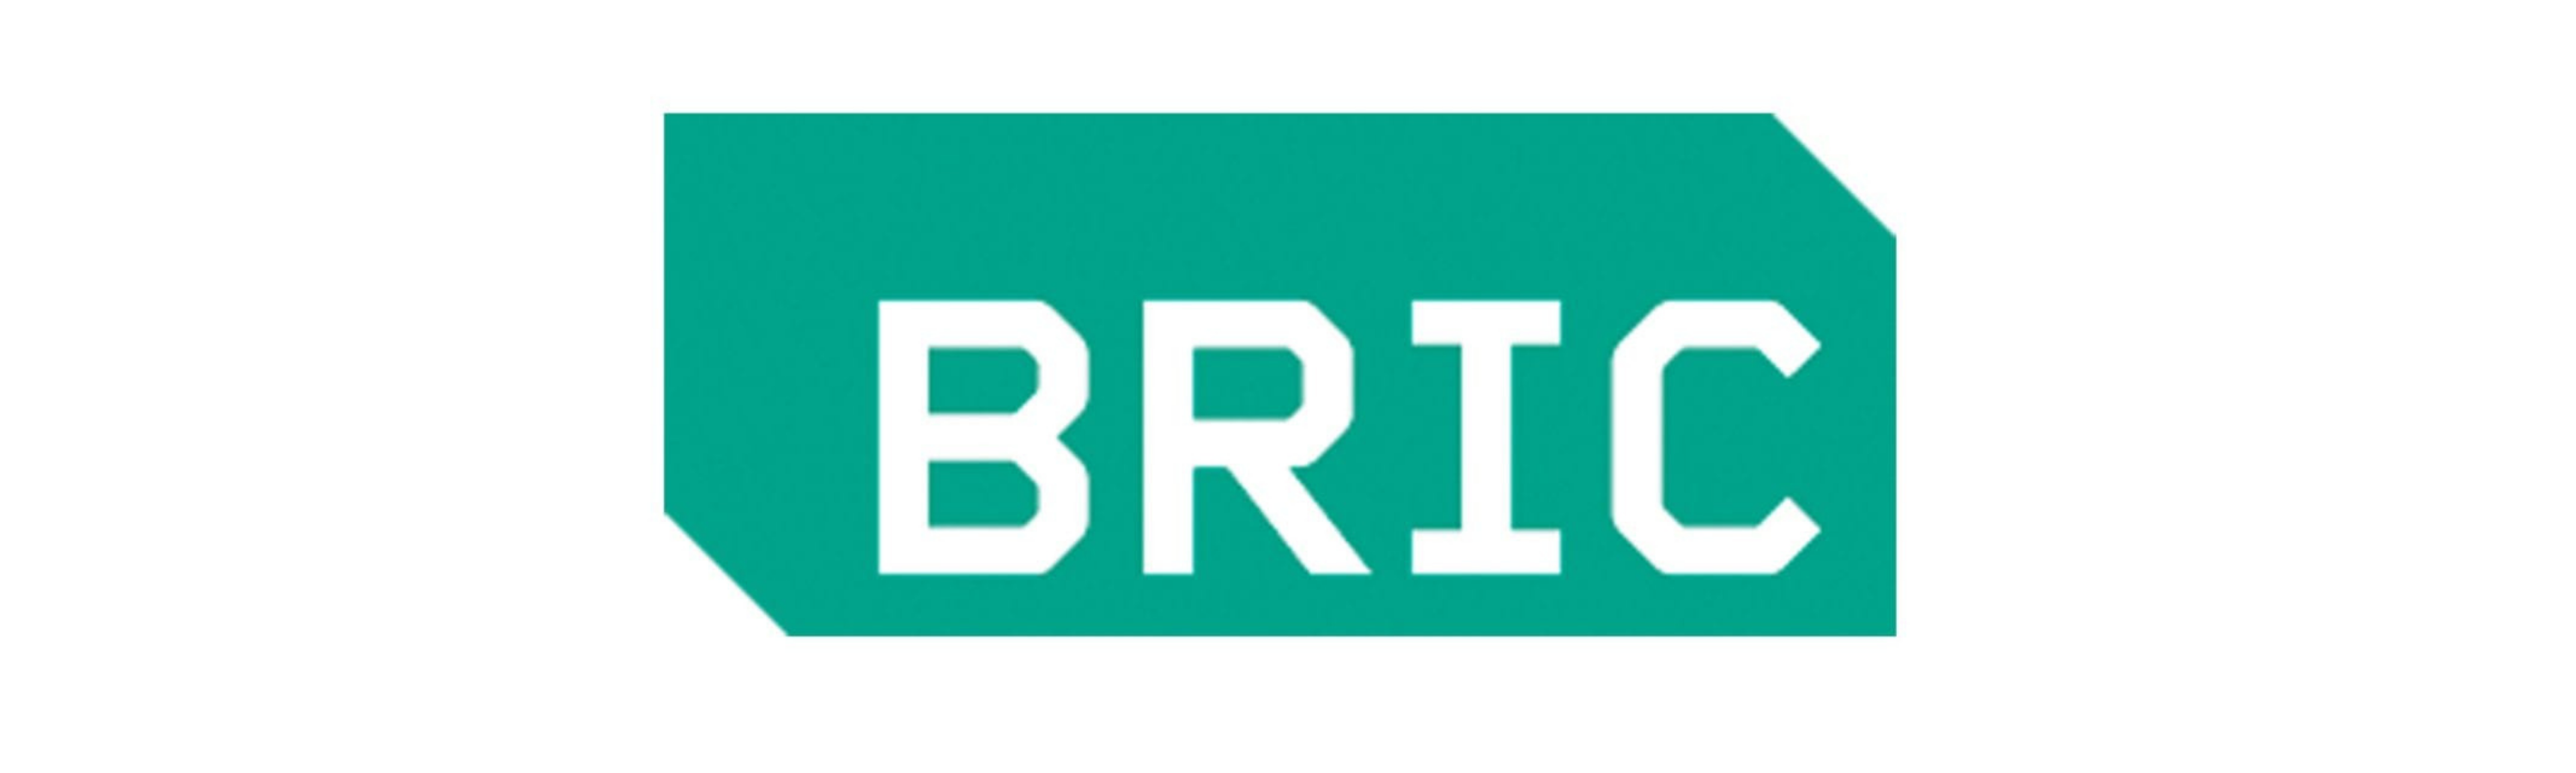 BRIC written in white lettering against a green background.